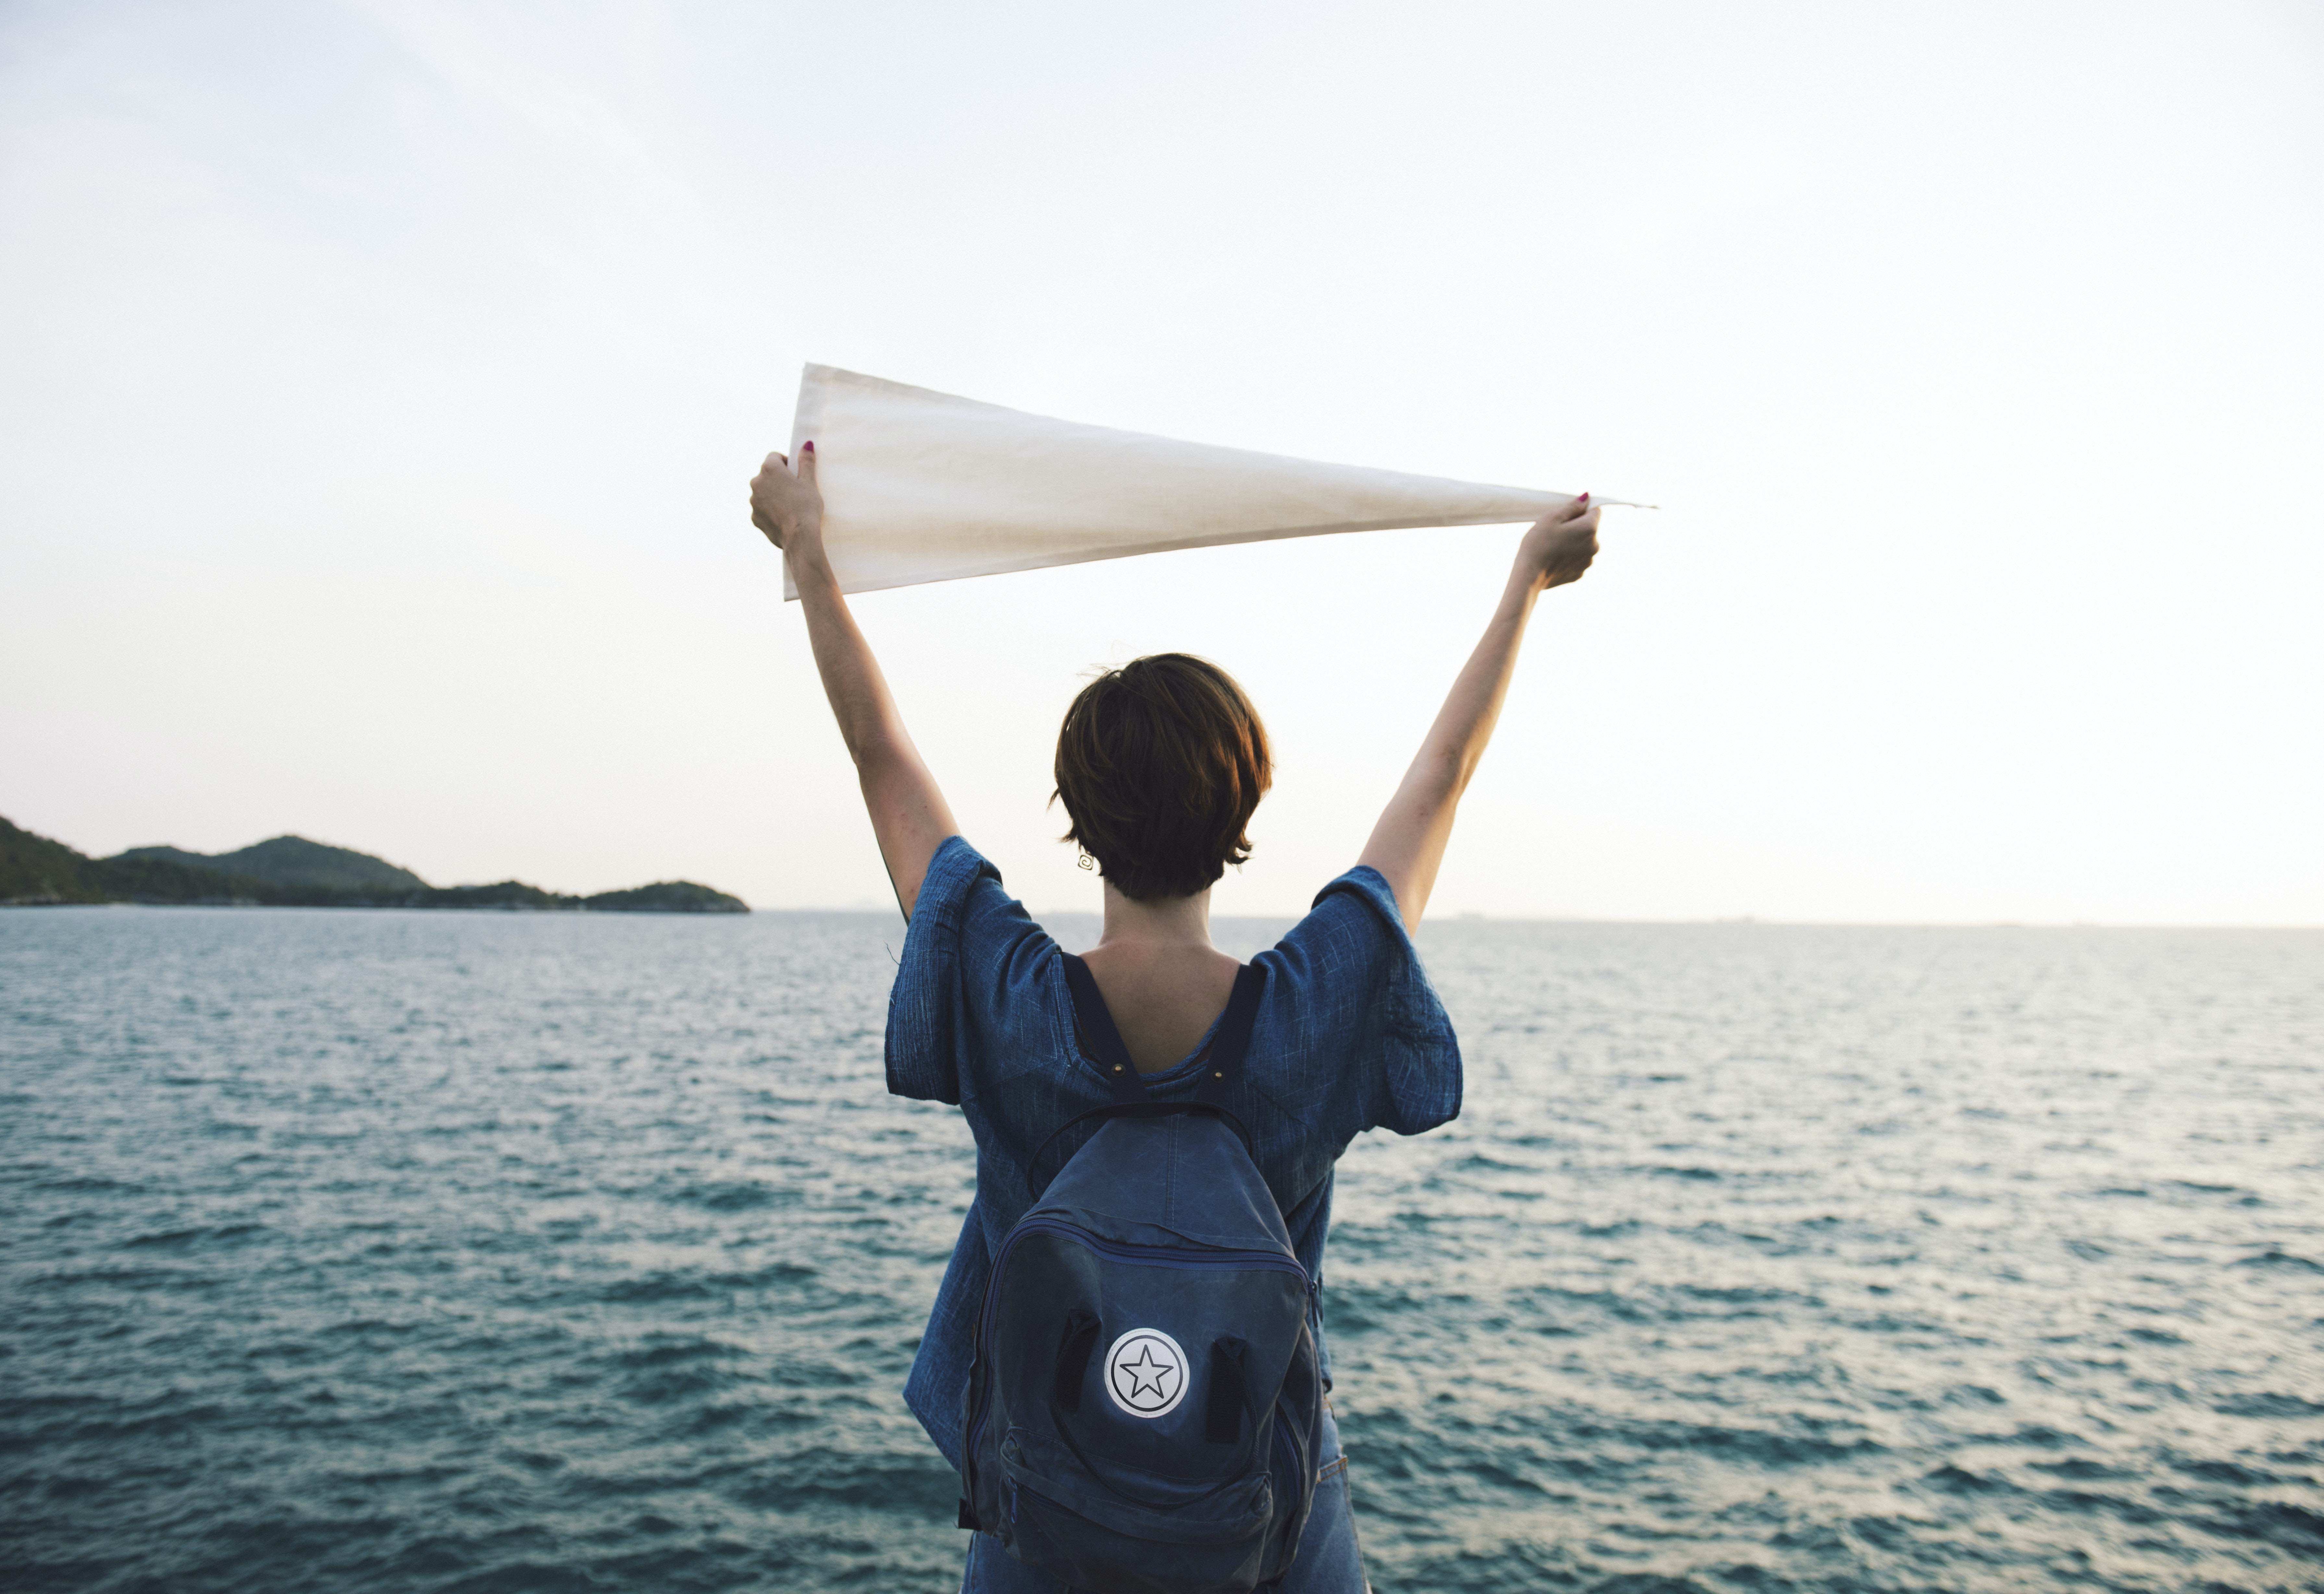 woman holding white pennant in front of body of water